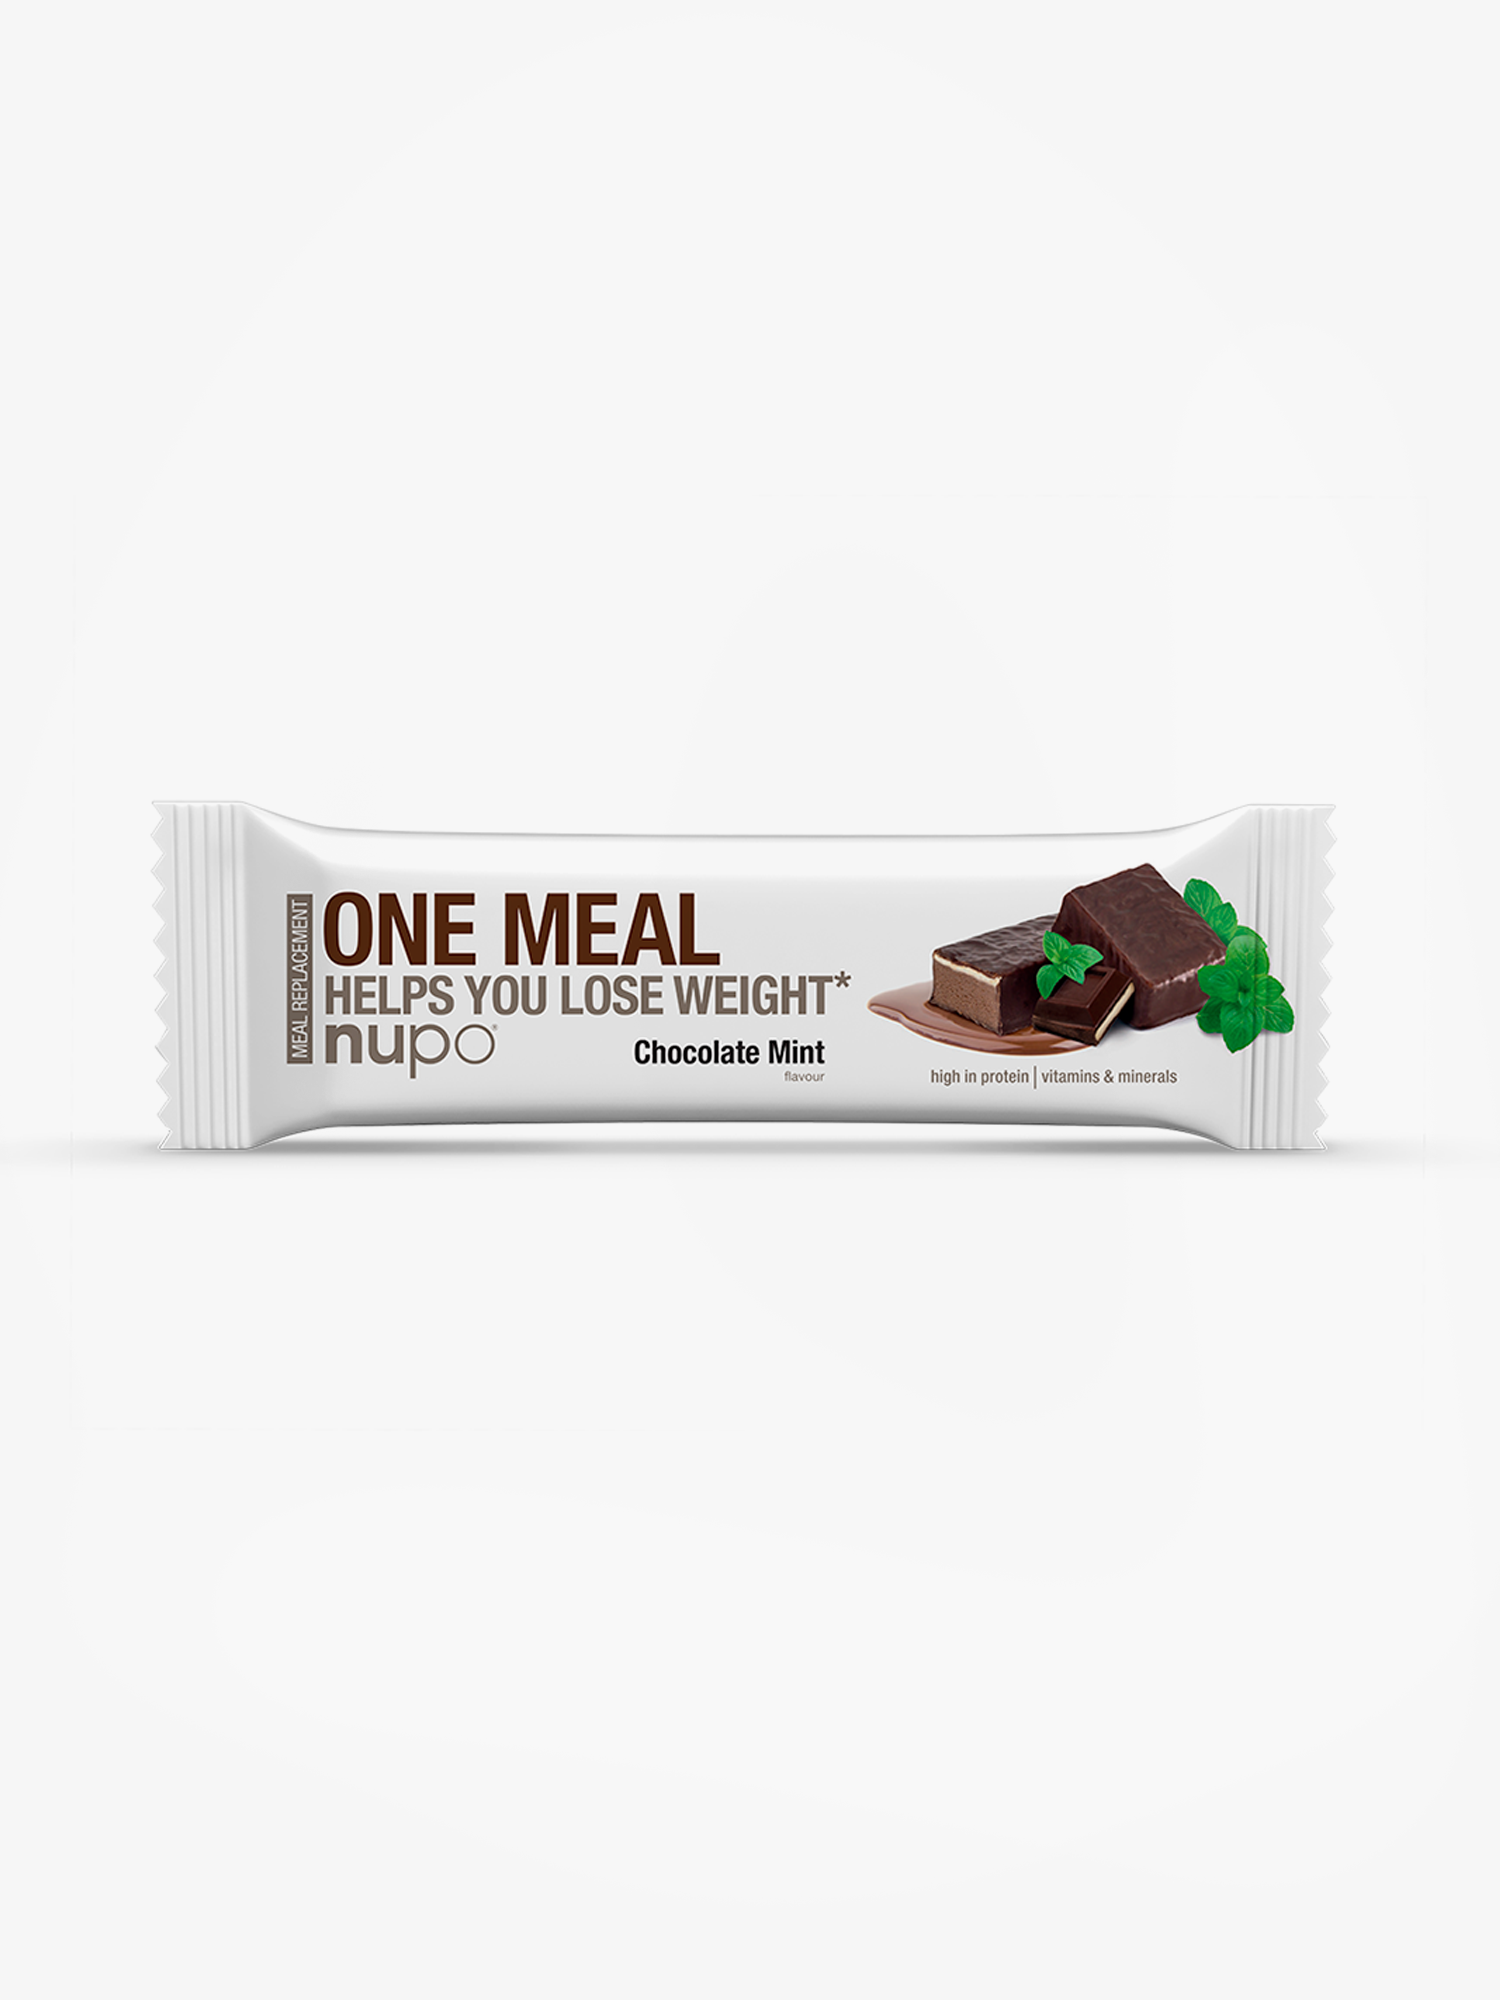 One Meal Chocolate Mint